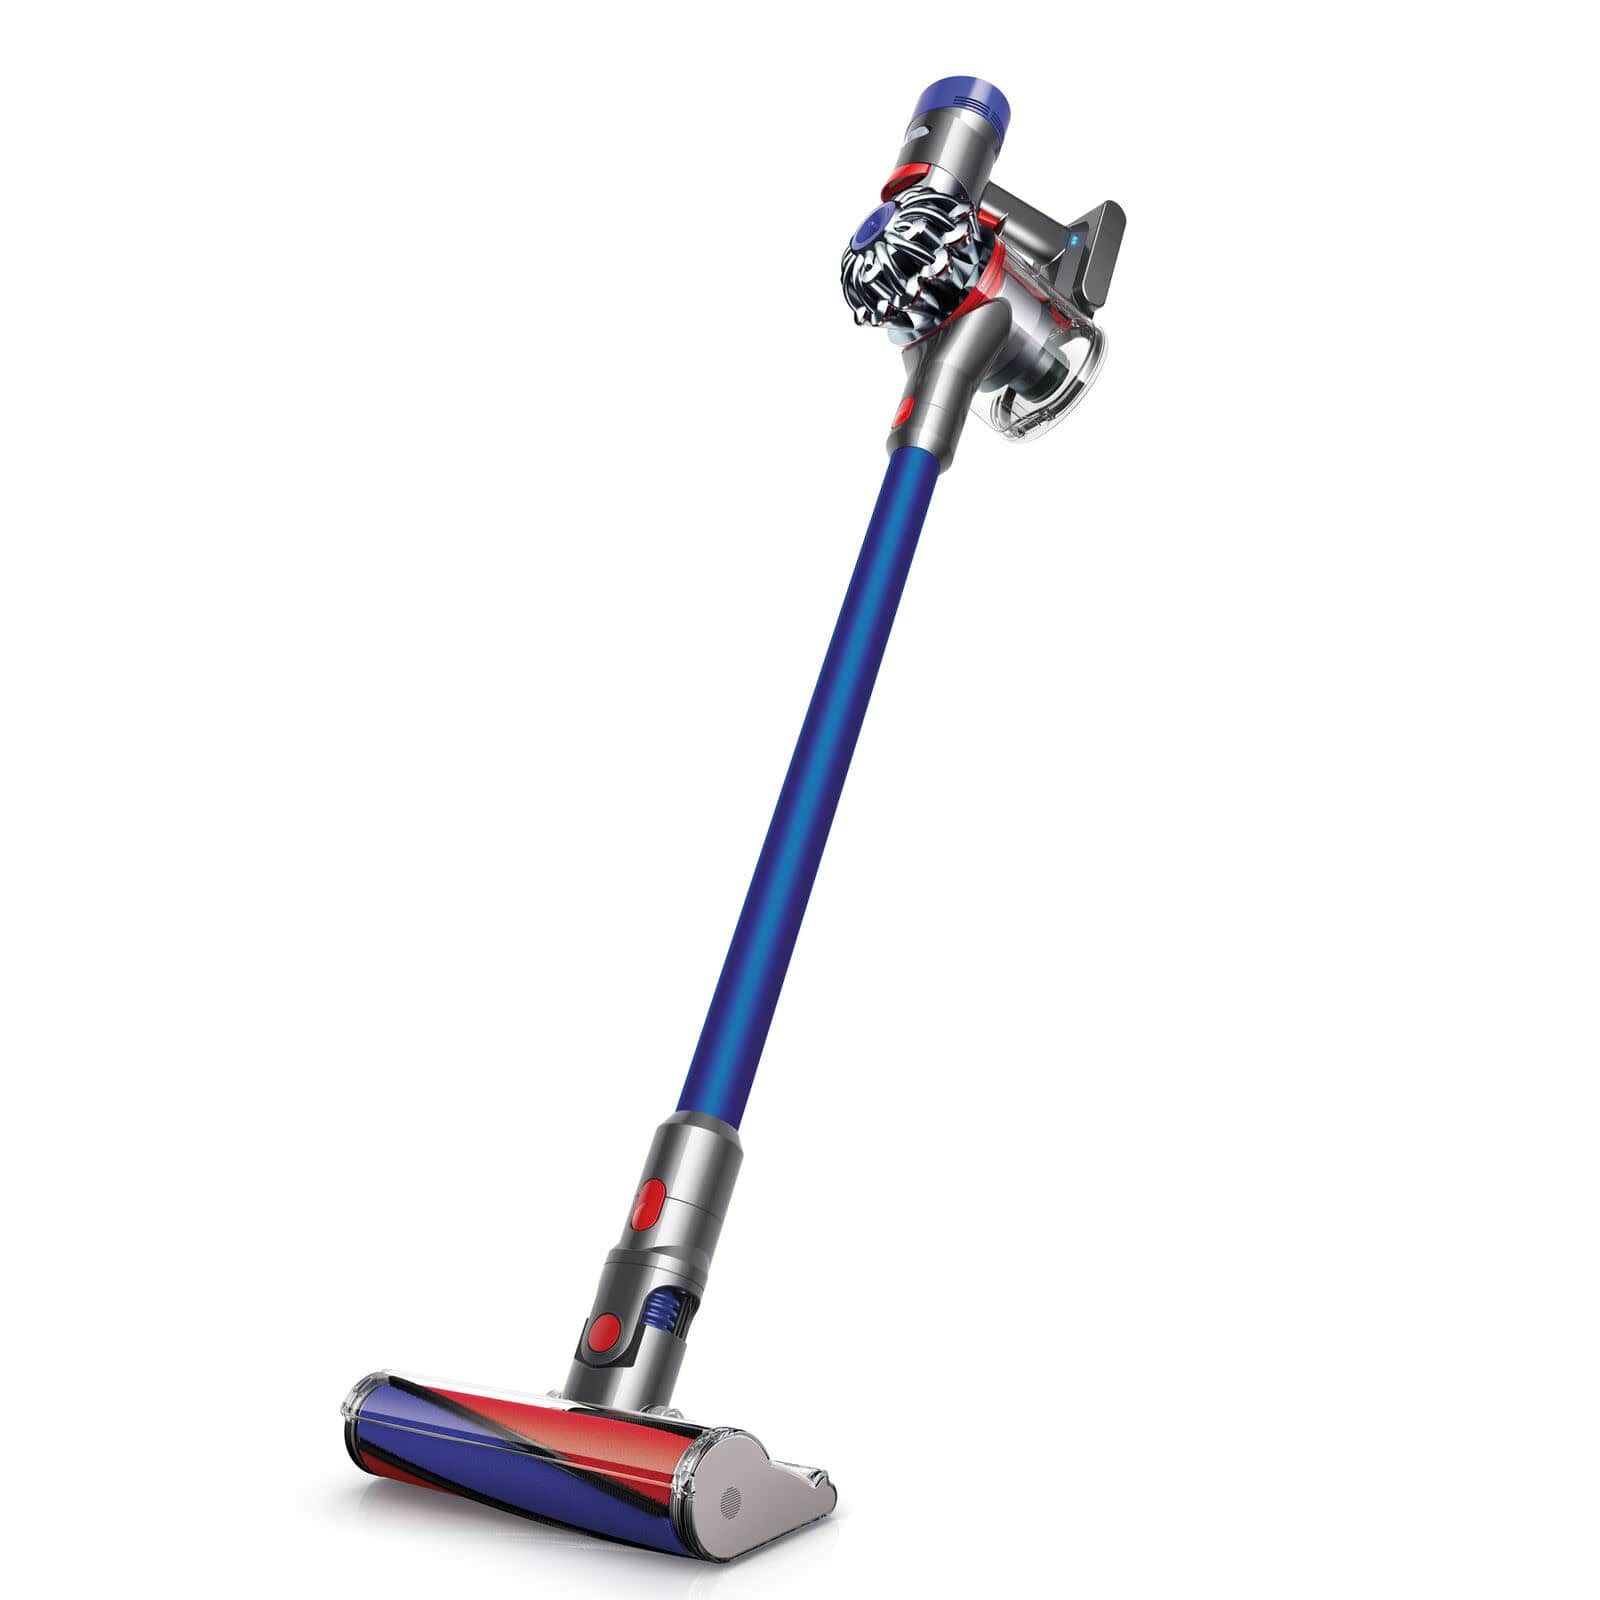 Dyson Vacuum Cleaners and Air Purifiers at eBay